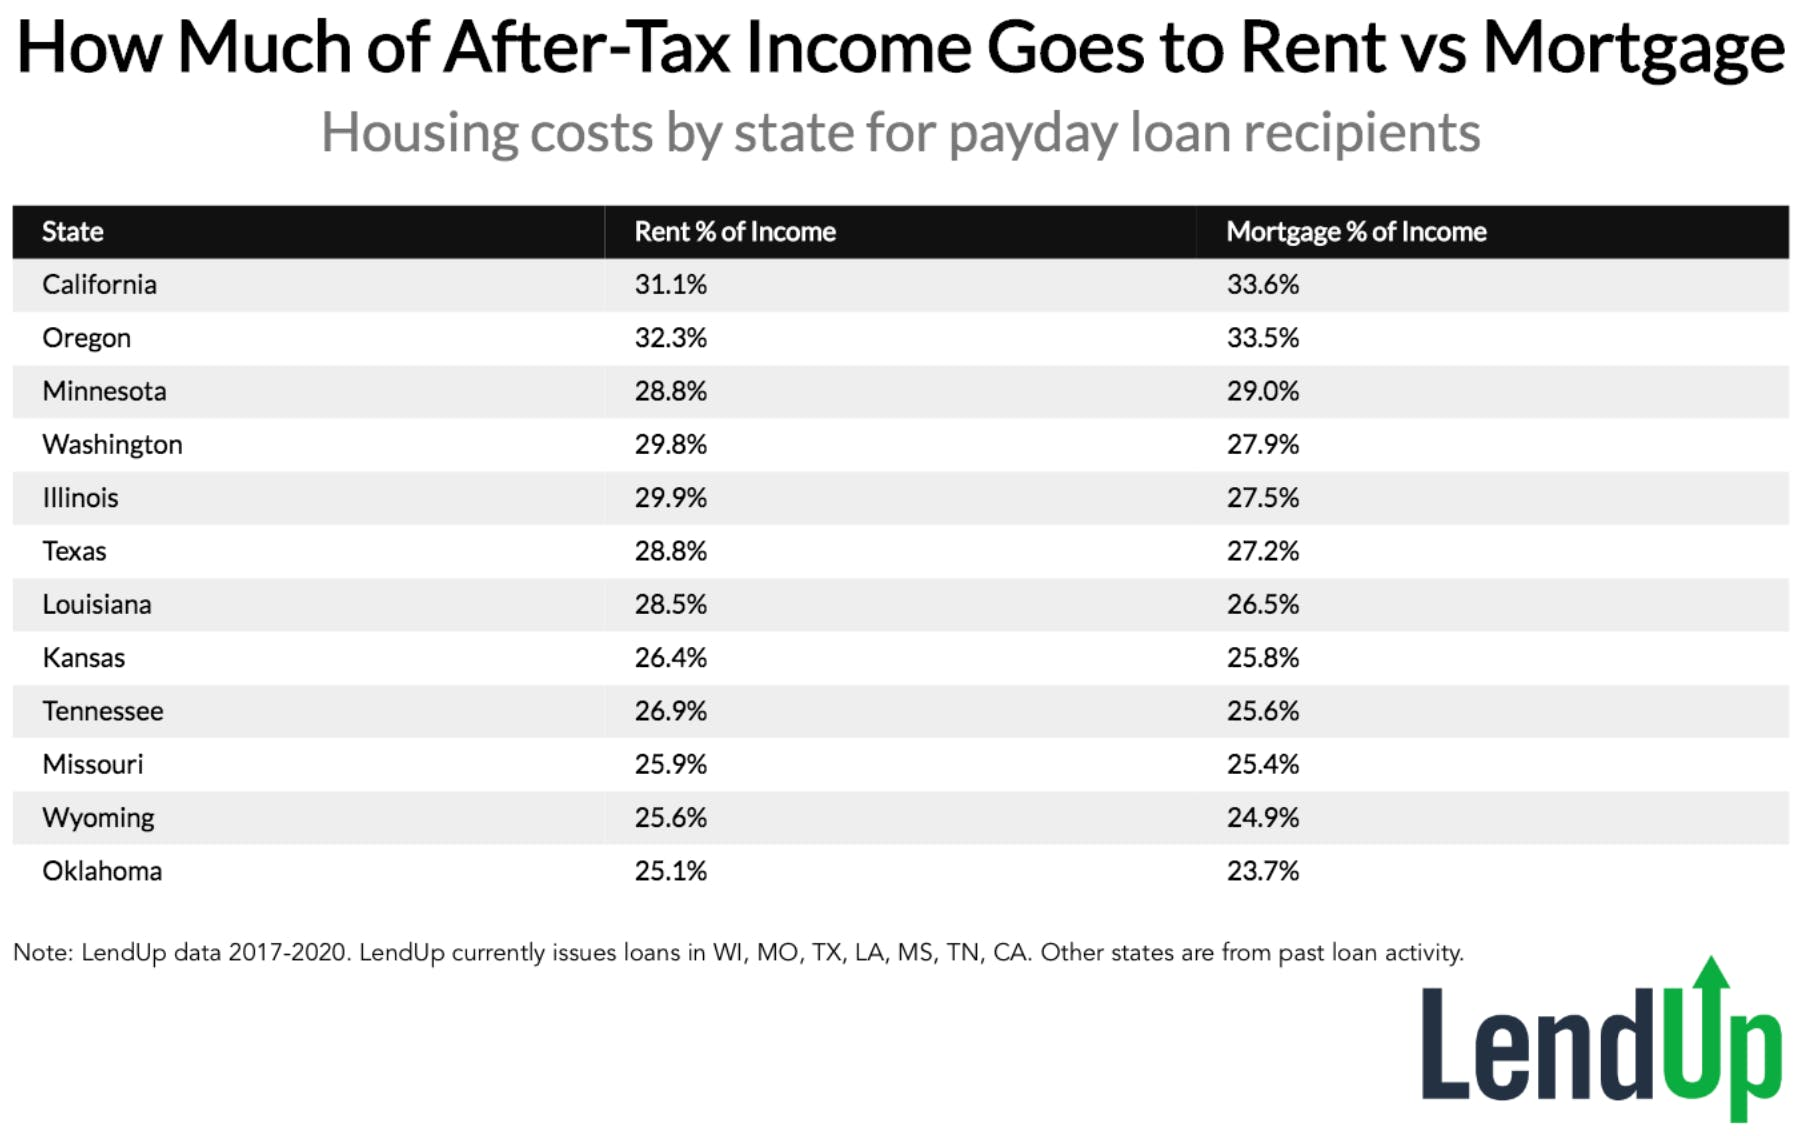 How Much of After-Tax Income Goes to Rent vs Mortgage